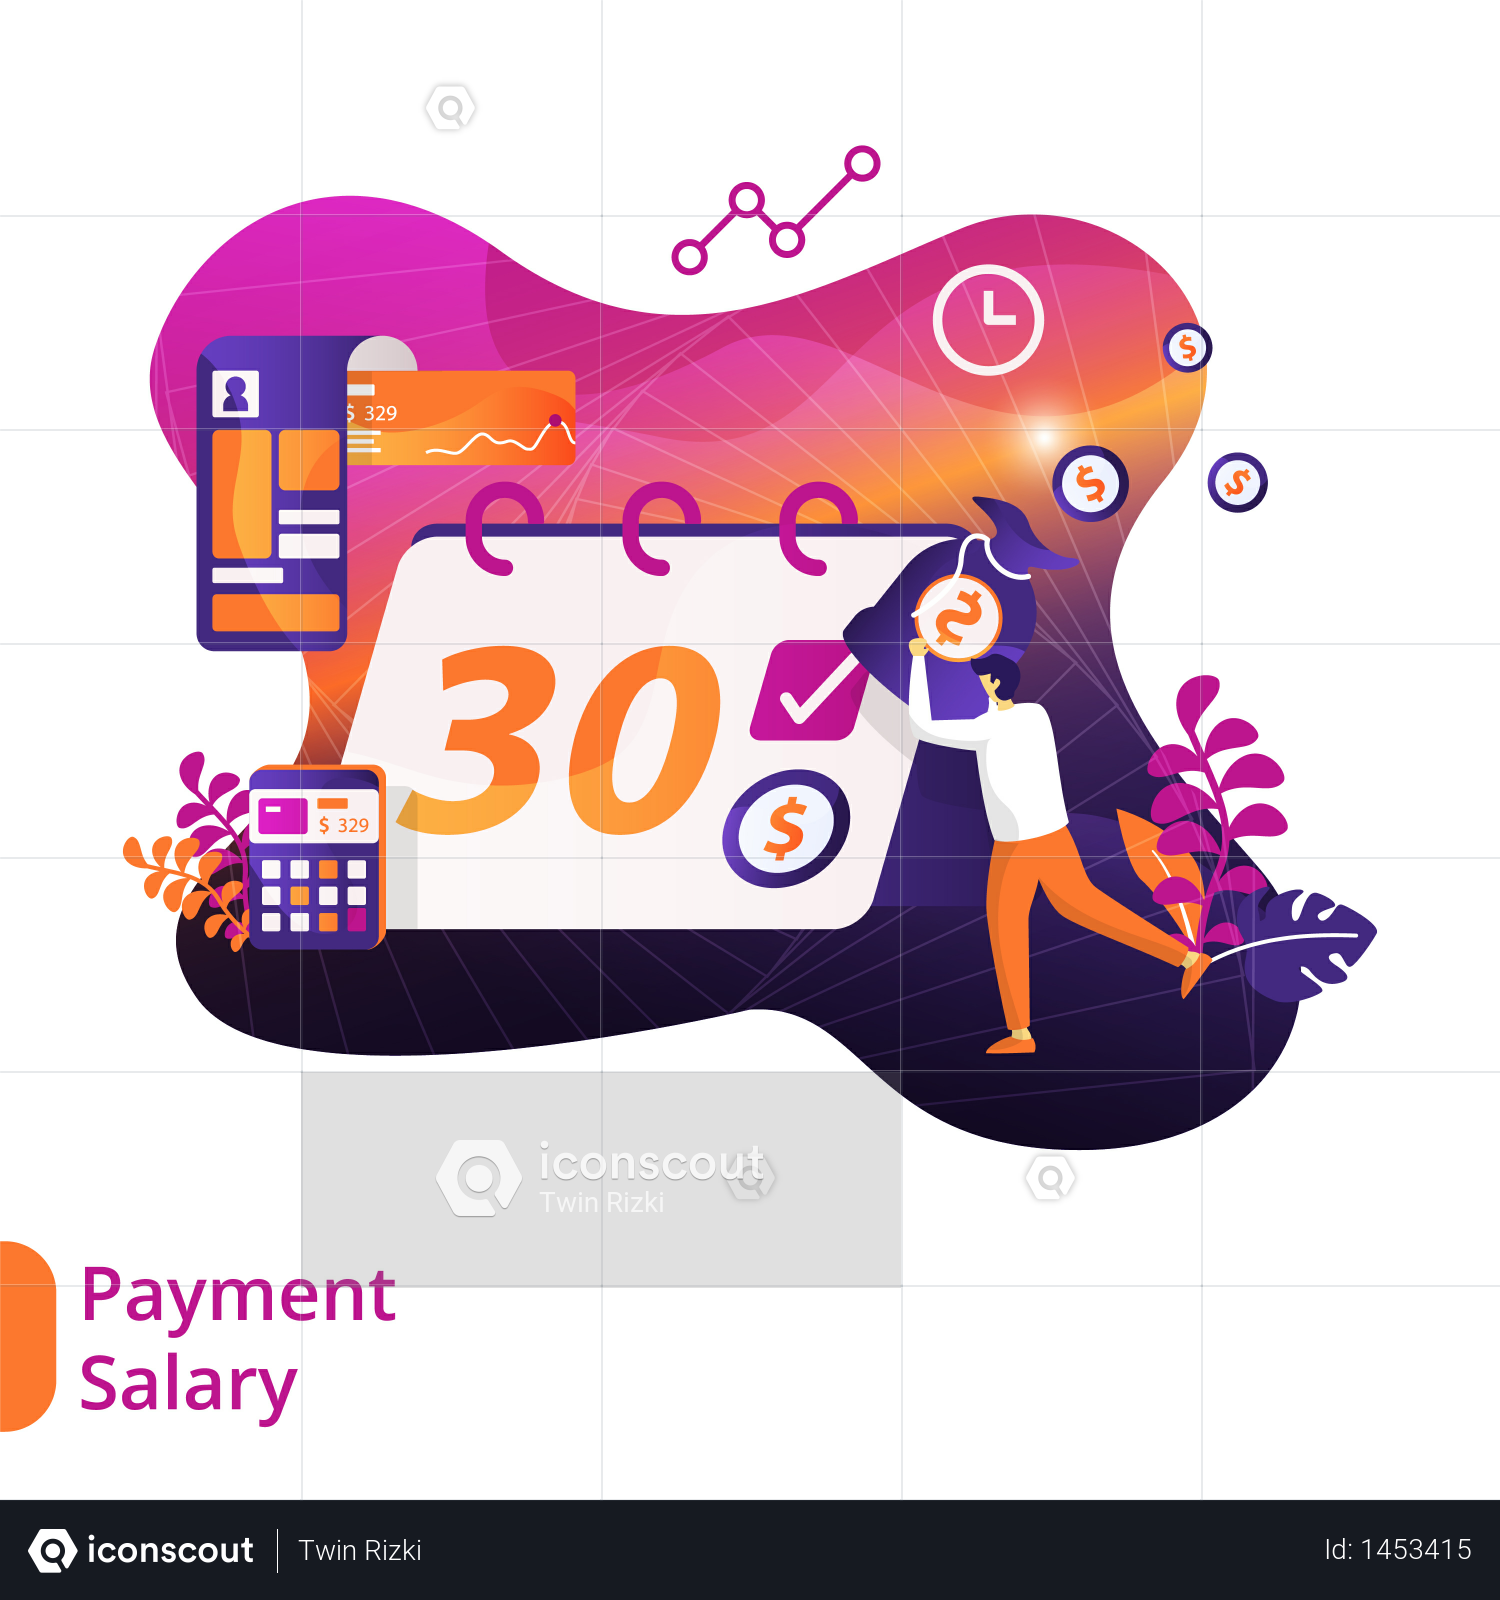 Premium Salary day Illustration download in PNG & Vector